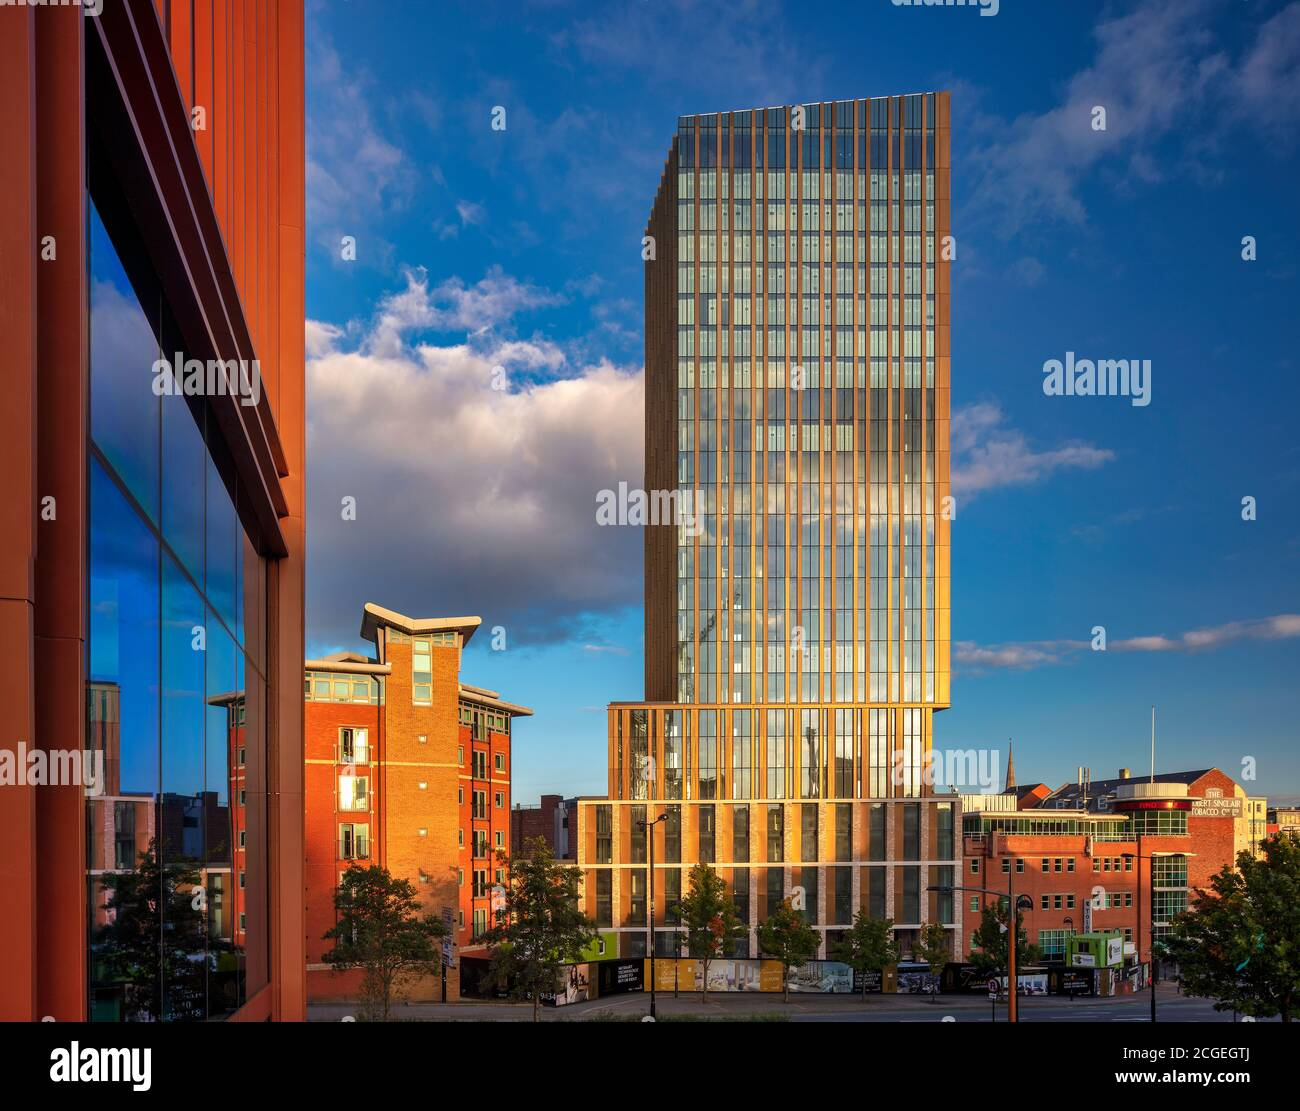 Evening light over Hadrian Tower, Newcastle upon Tyne, Tyne and Wear, England, United Kingdom Stock Photo